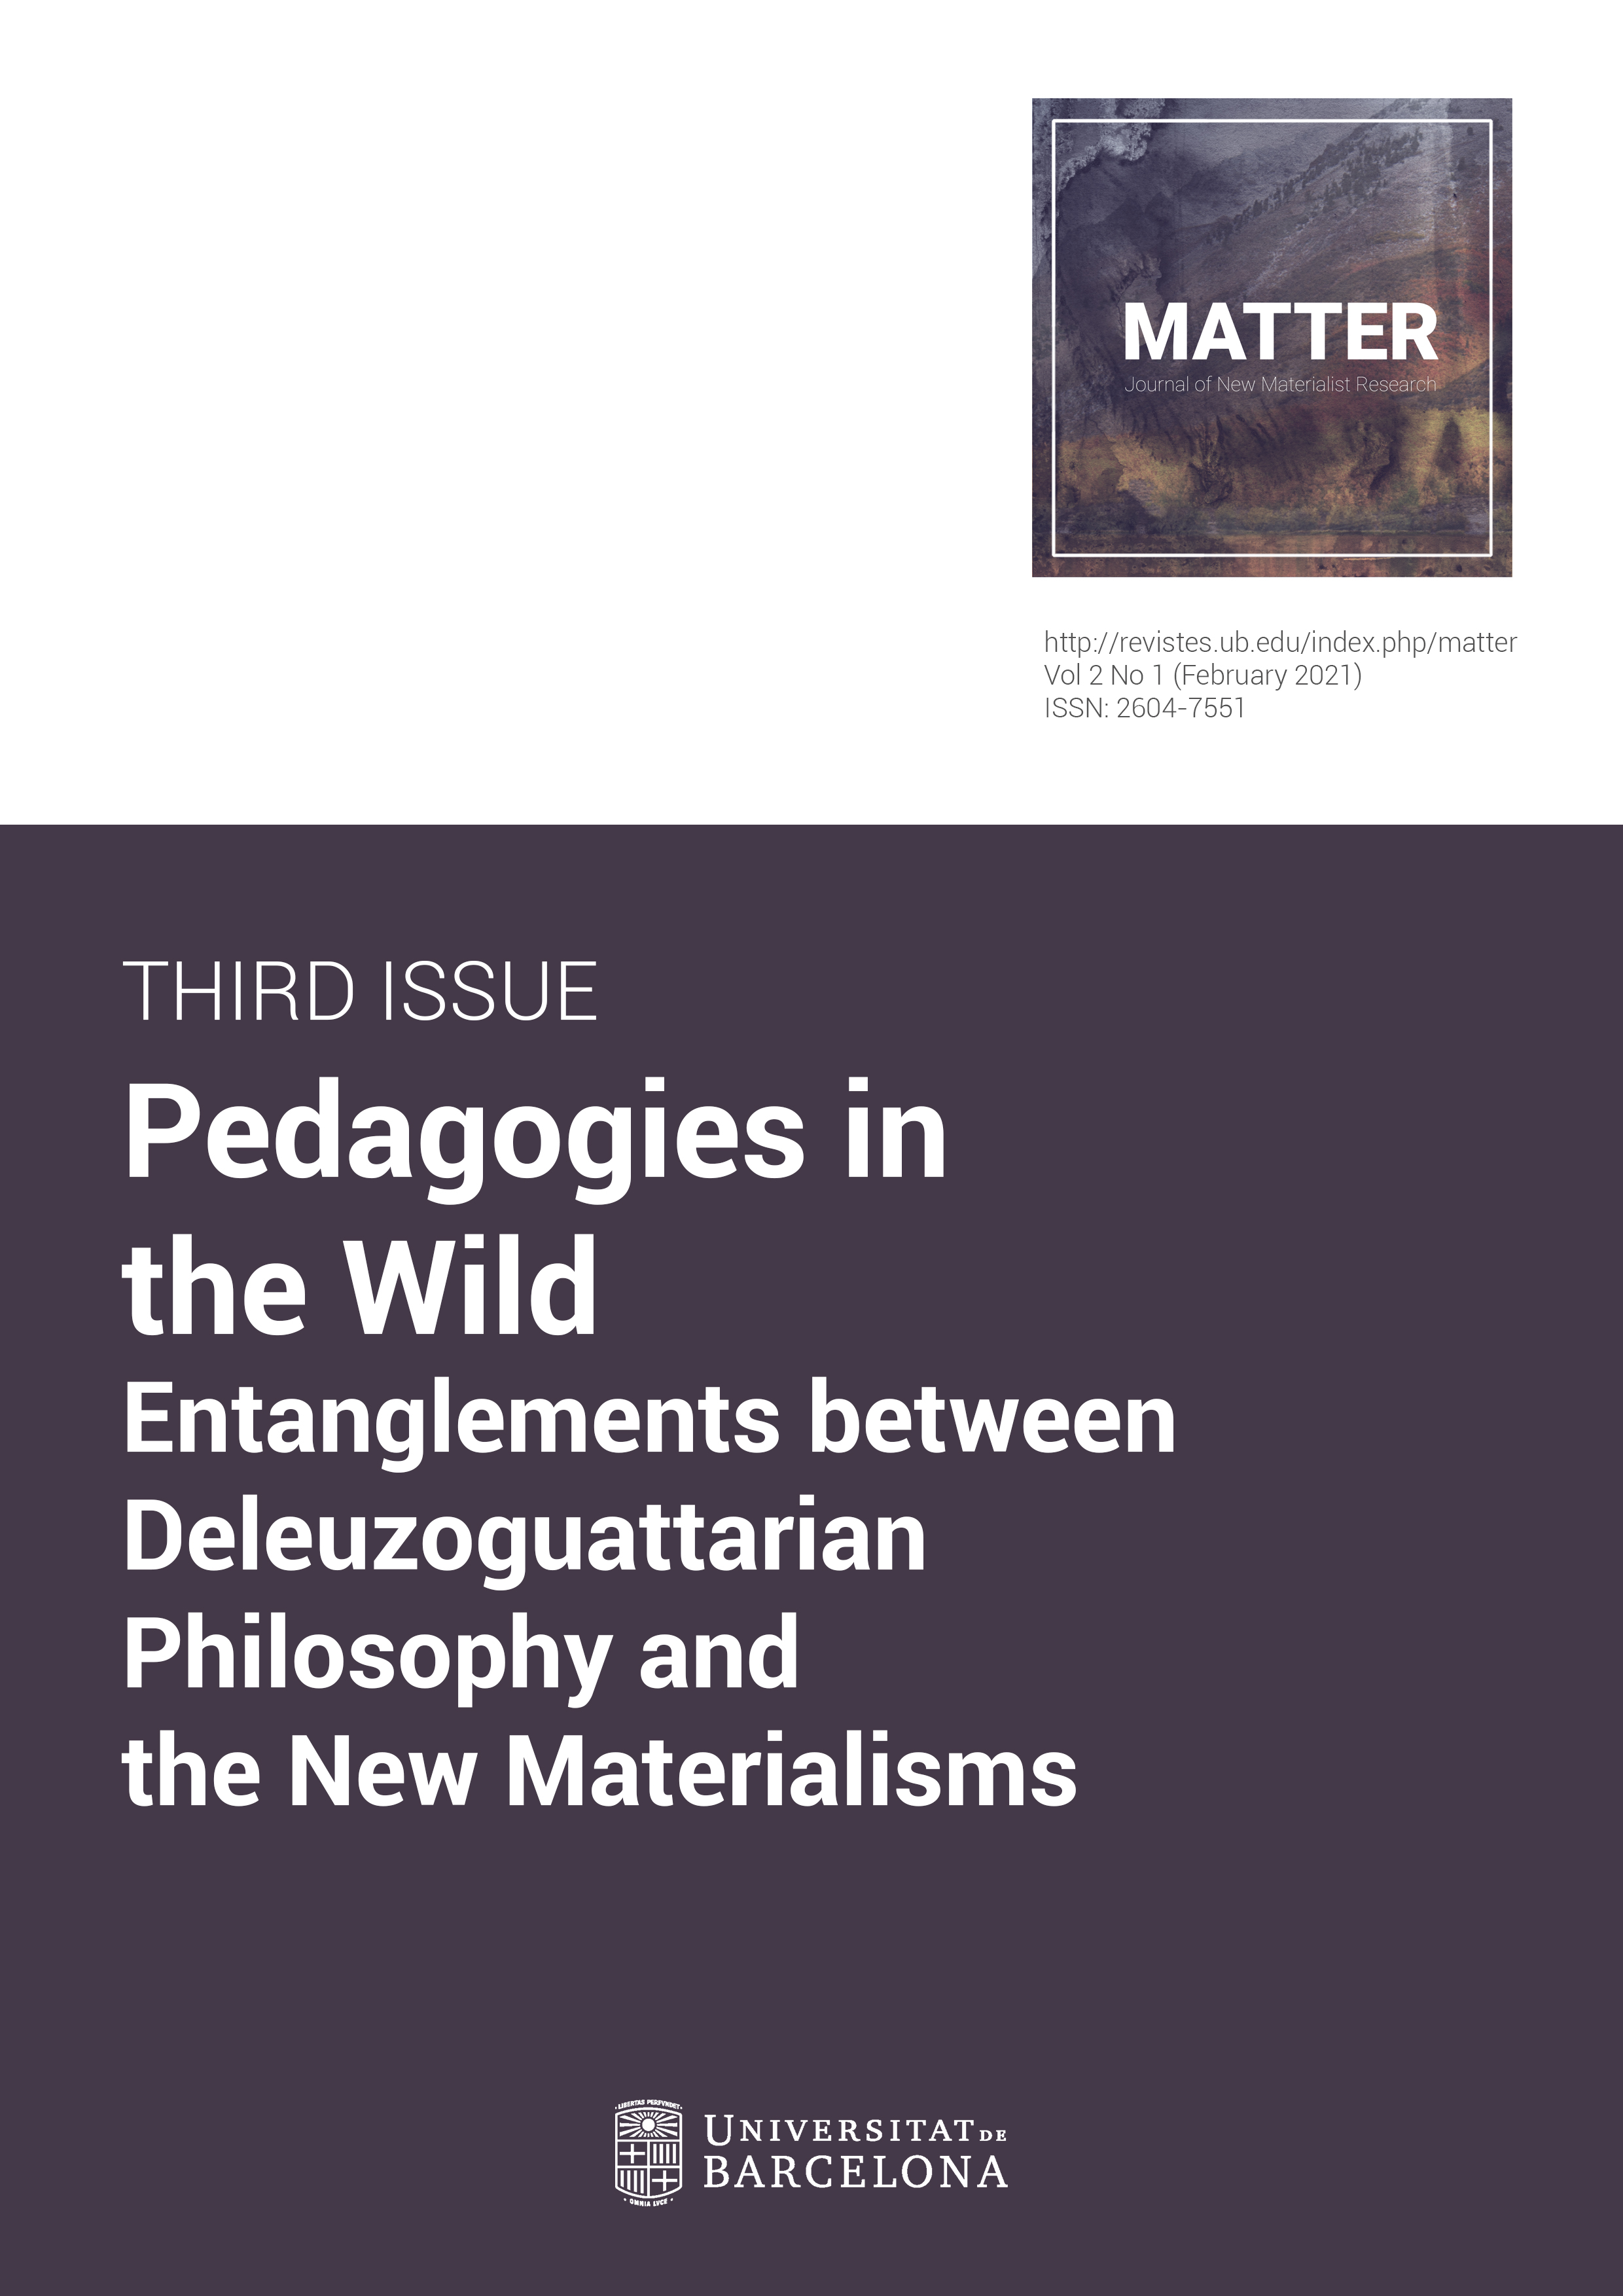 View Vol. 2 No. 1 (2021): Pedagogies in the Wild - Entanglements between Deleuzoguattarian Philosophy and the New Materialisms